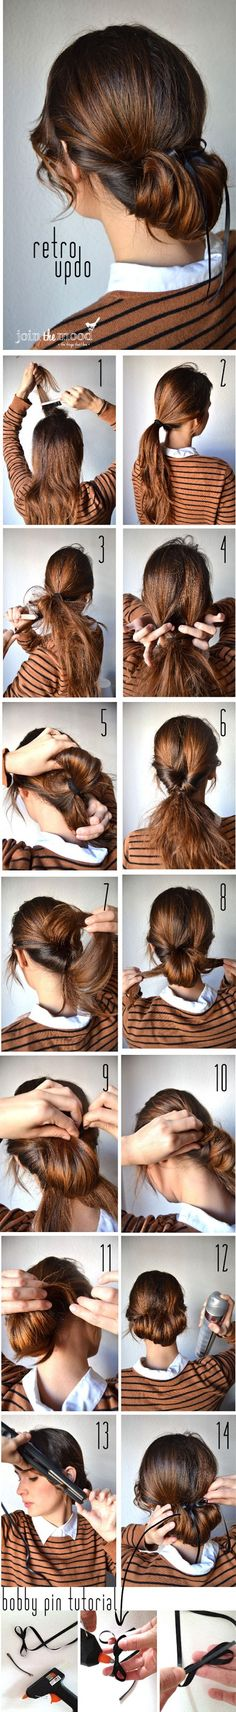 Retro Updo Tutorial: Step by Step Hairstyle for Long Hair Retro Updo Hairstyles, Updo Hairstyles Tutorials, Pretty Hairstyles, Wedding Hairstyles, Quick Hairstyles, Wedding Updo, Wedding Dress, Popular Haircuts, Beauty Tutorials